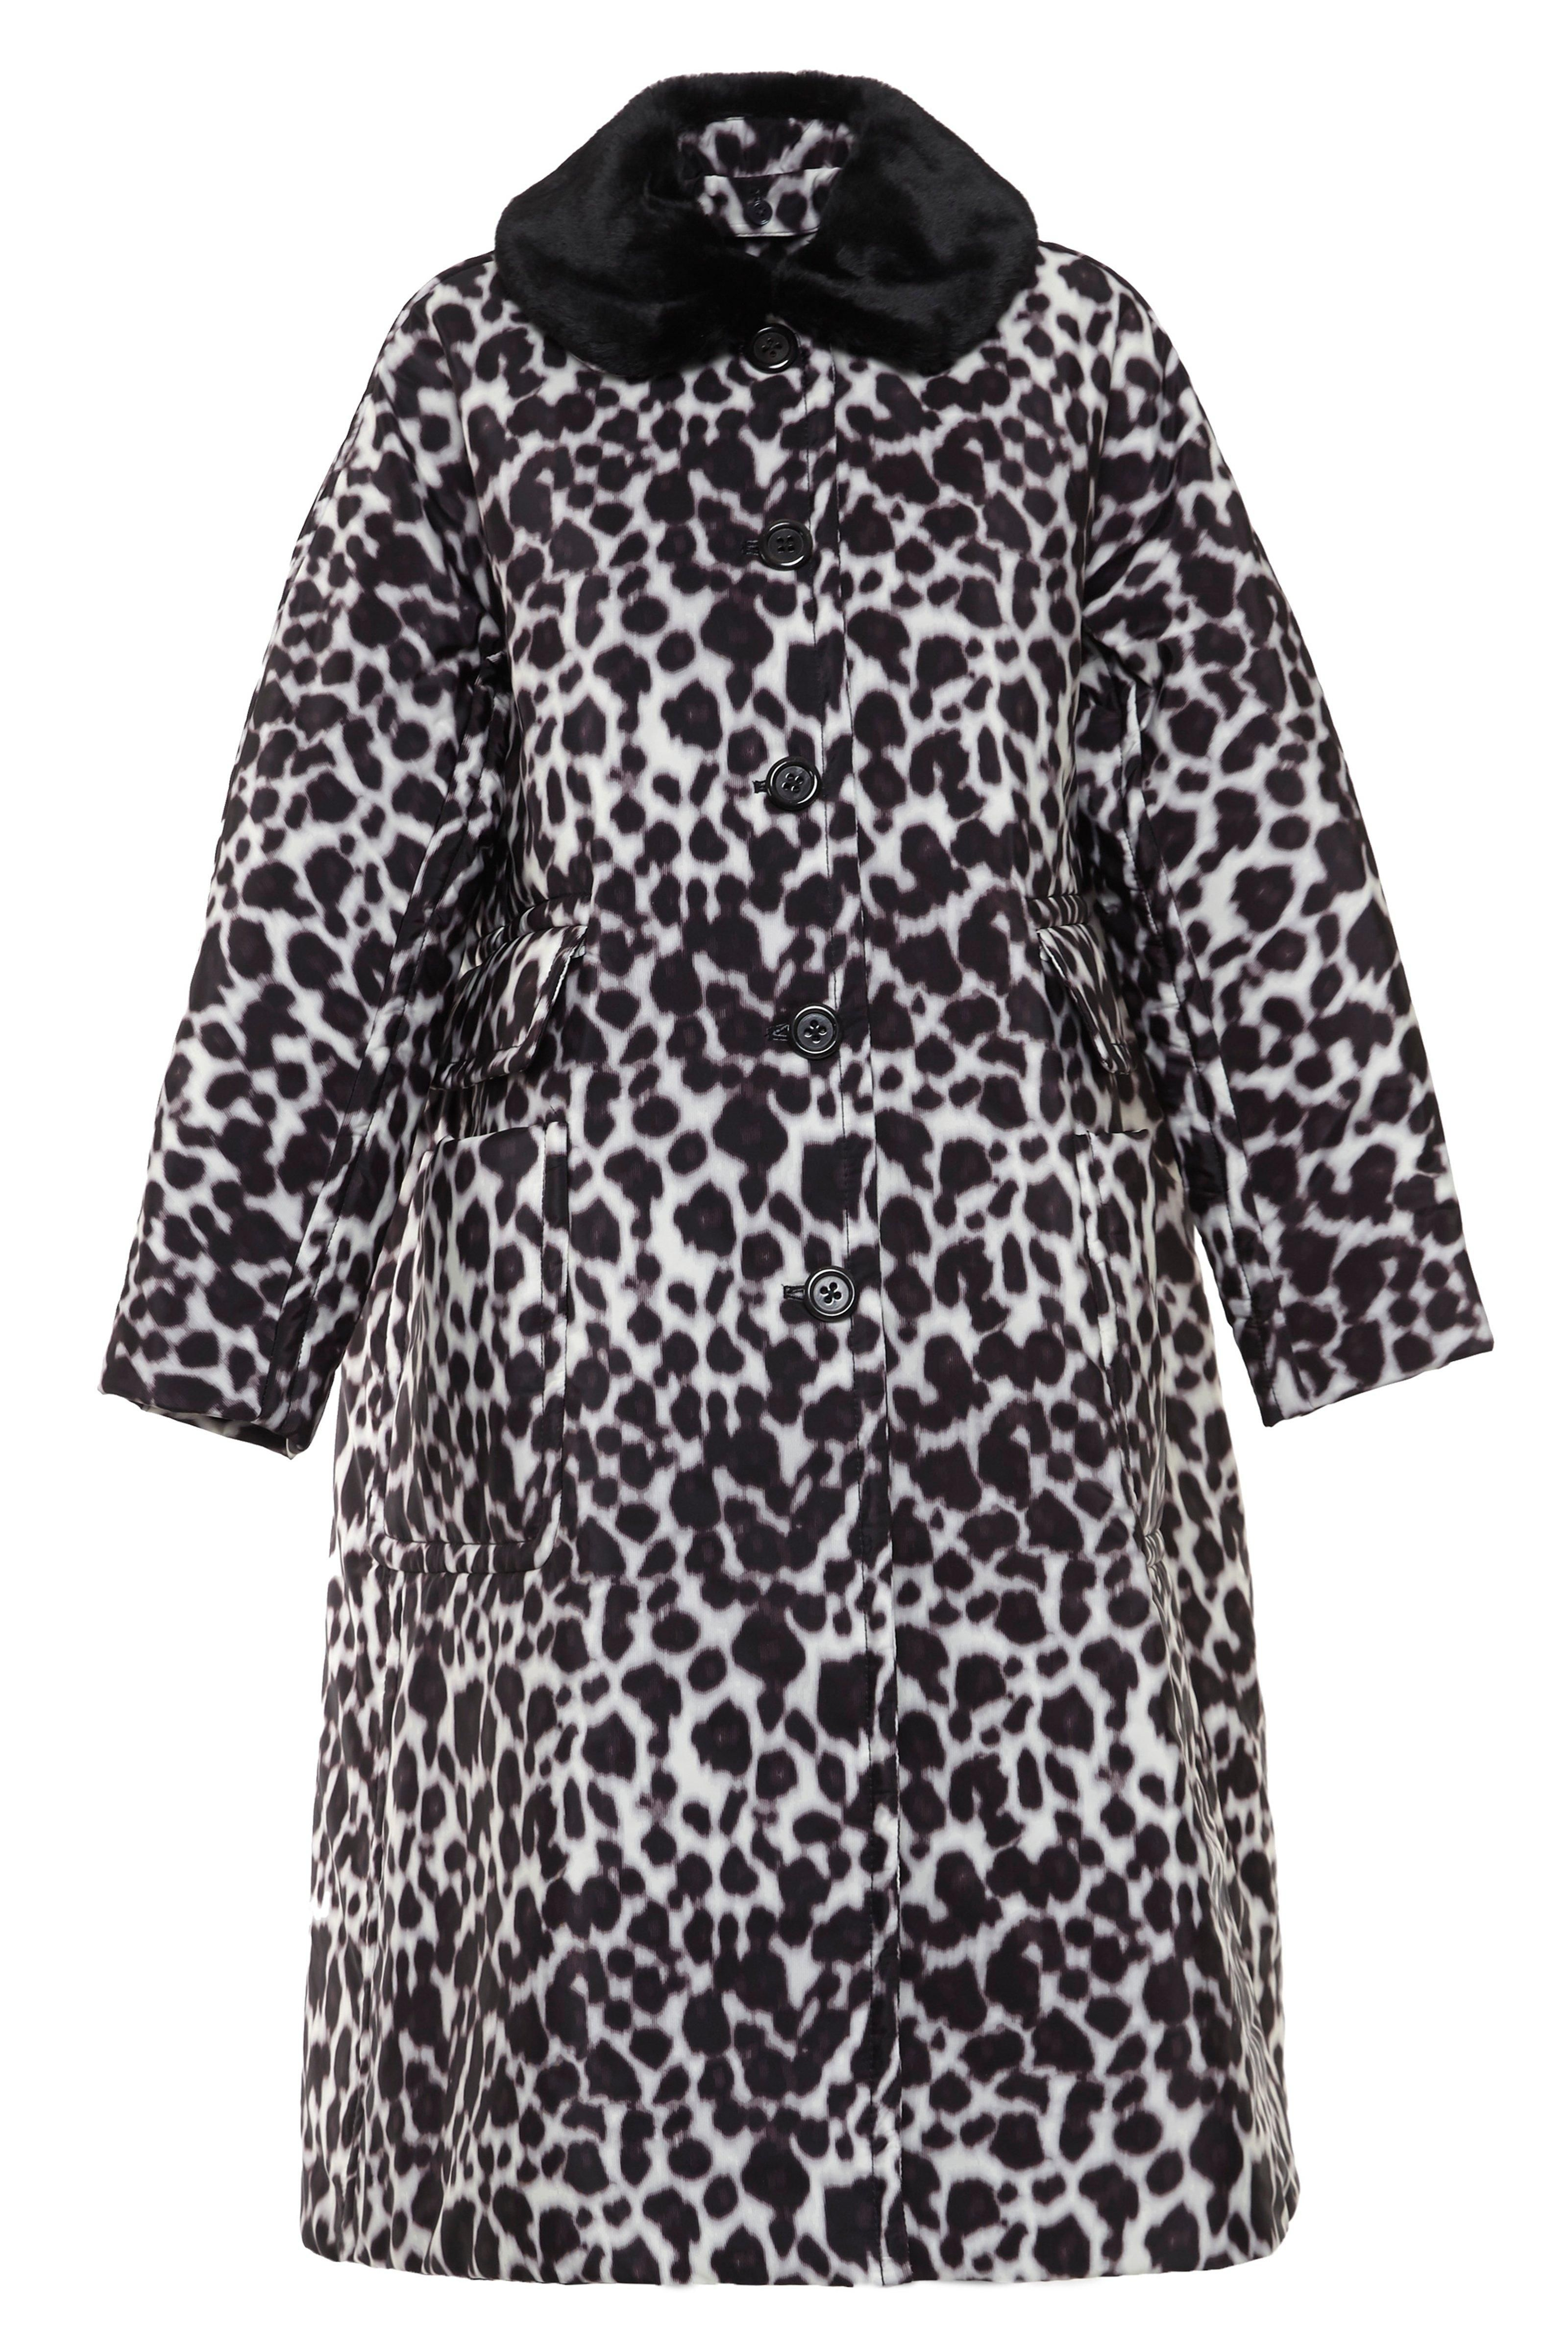 4b0f4b4df7d6 The Marc Jacobs Snow Leopard Overcoat with Fur Collar was made for the  elements…